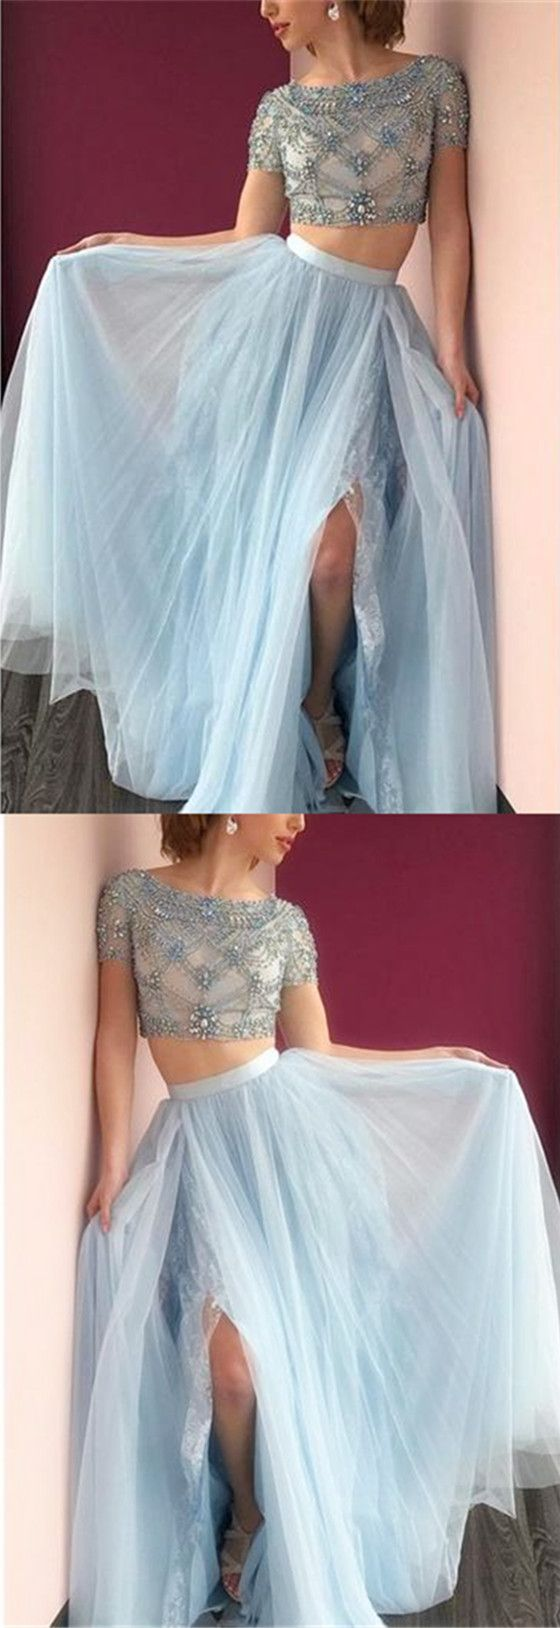 Round Neck Short Sleeve Light Blue Tulle Beaded Prom Dresses, Lace ...